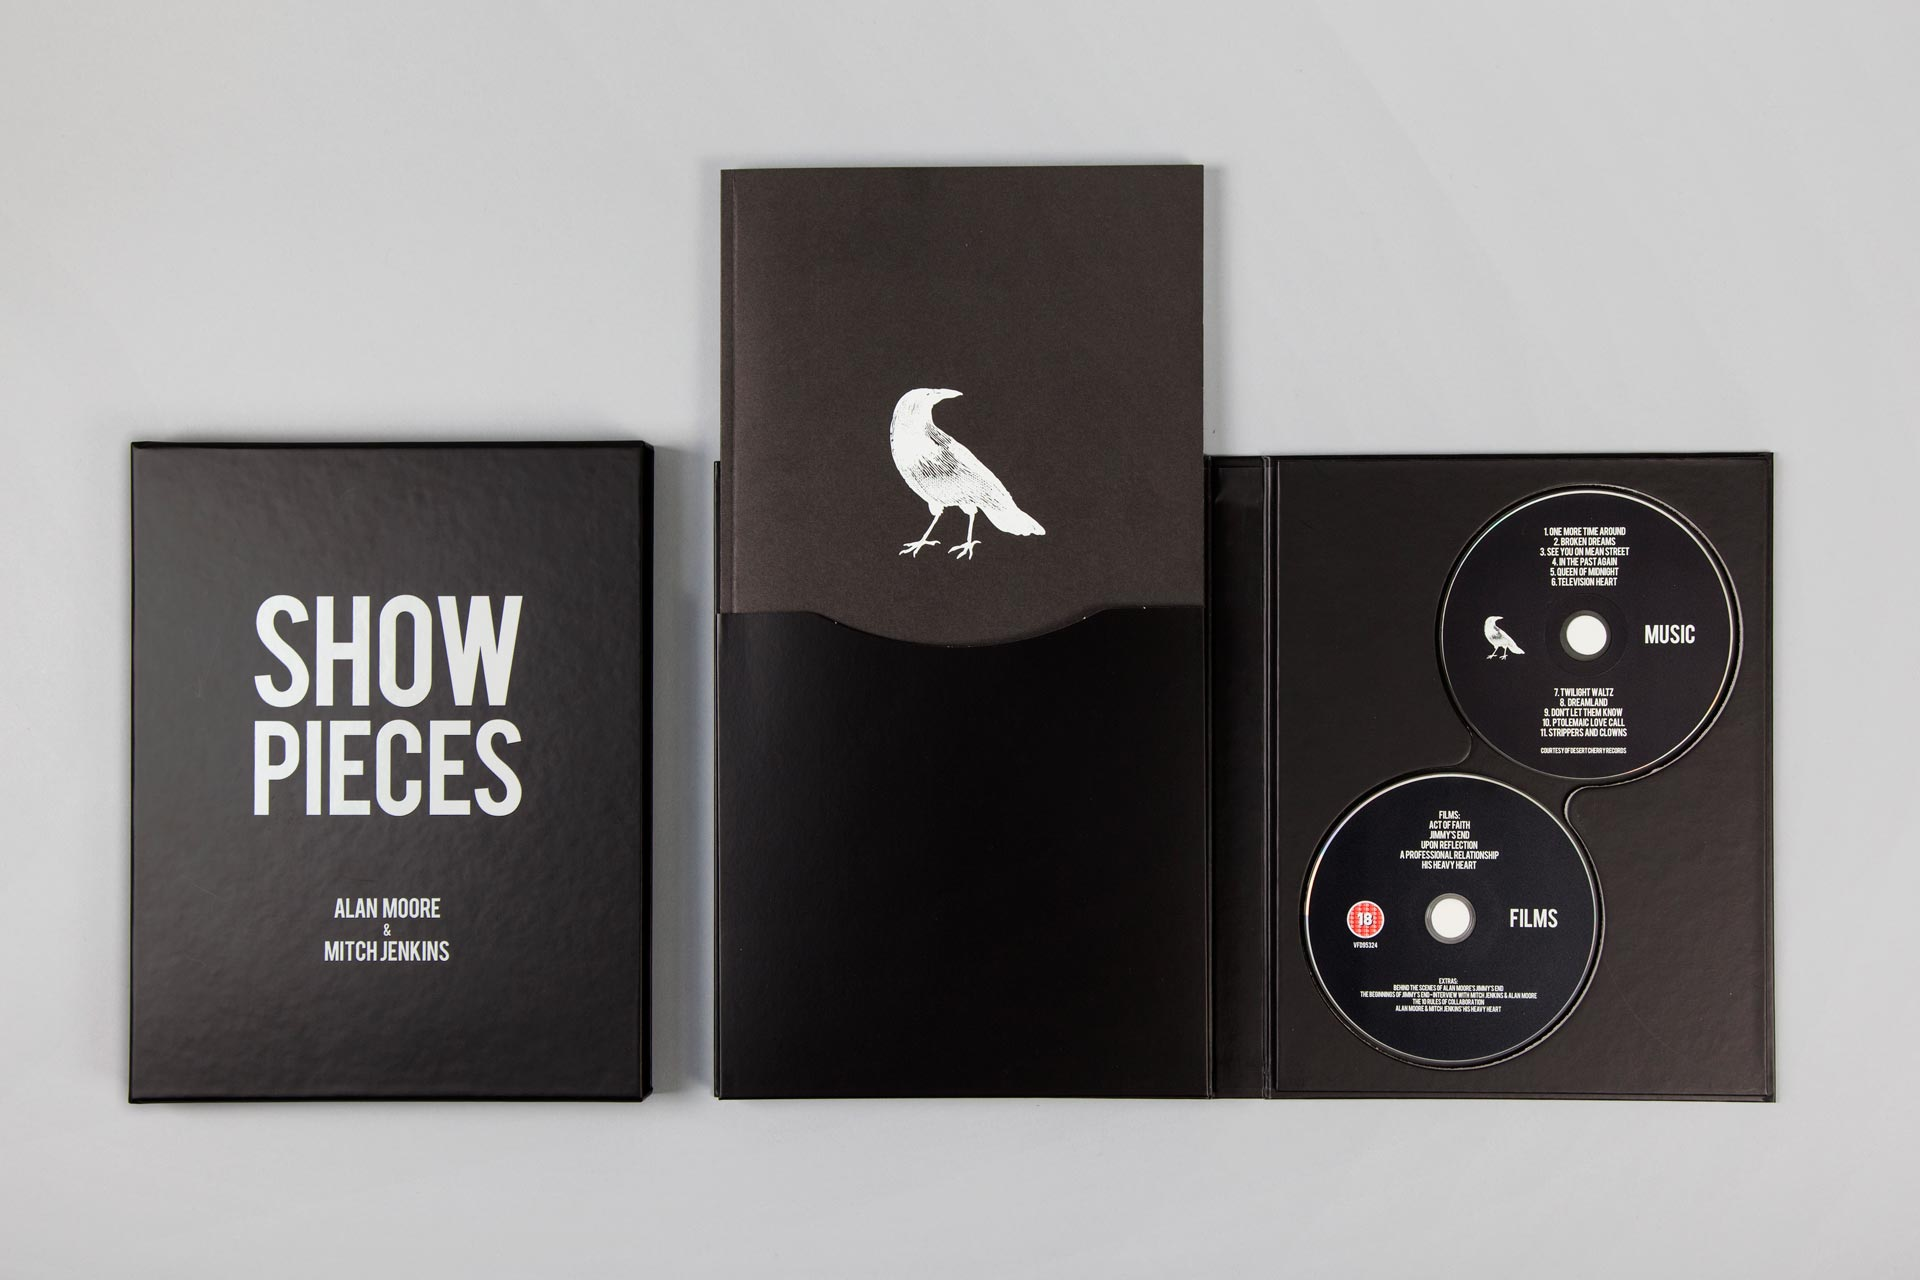 show-pieces-boxset-whole-set